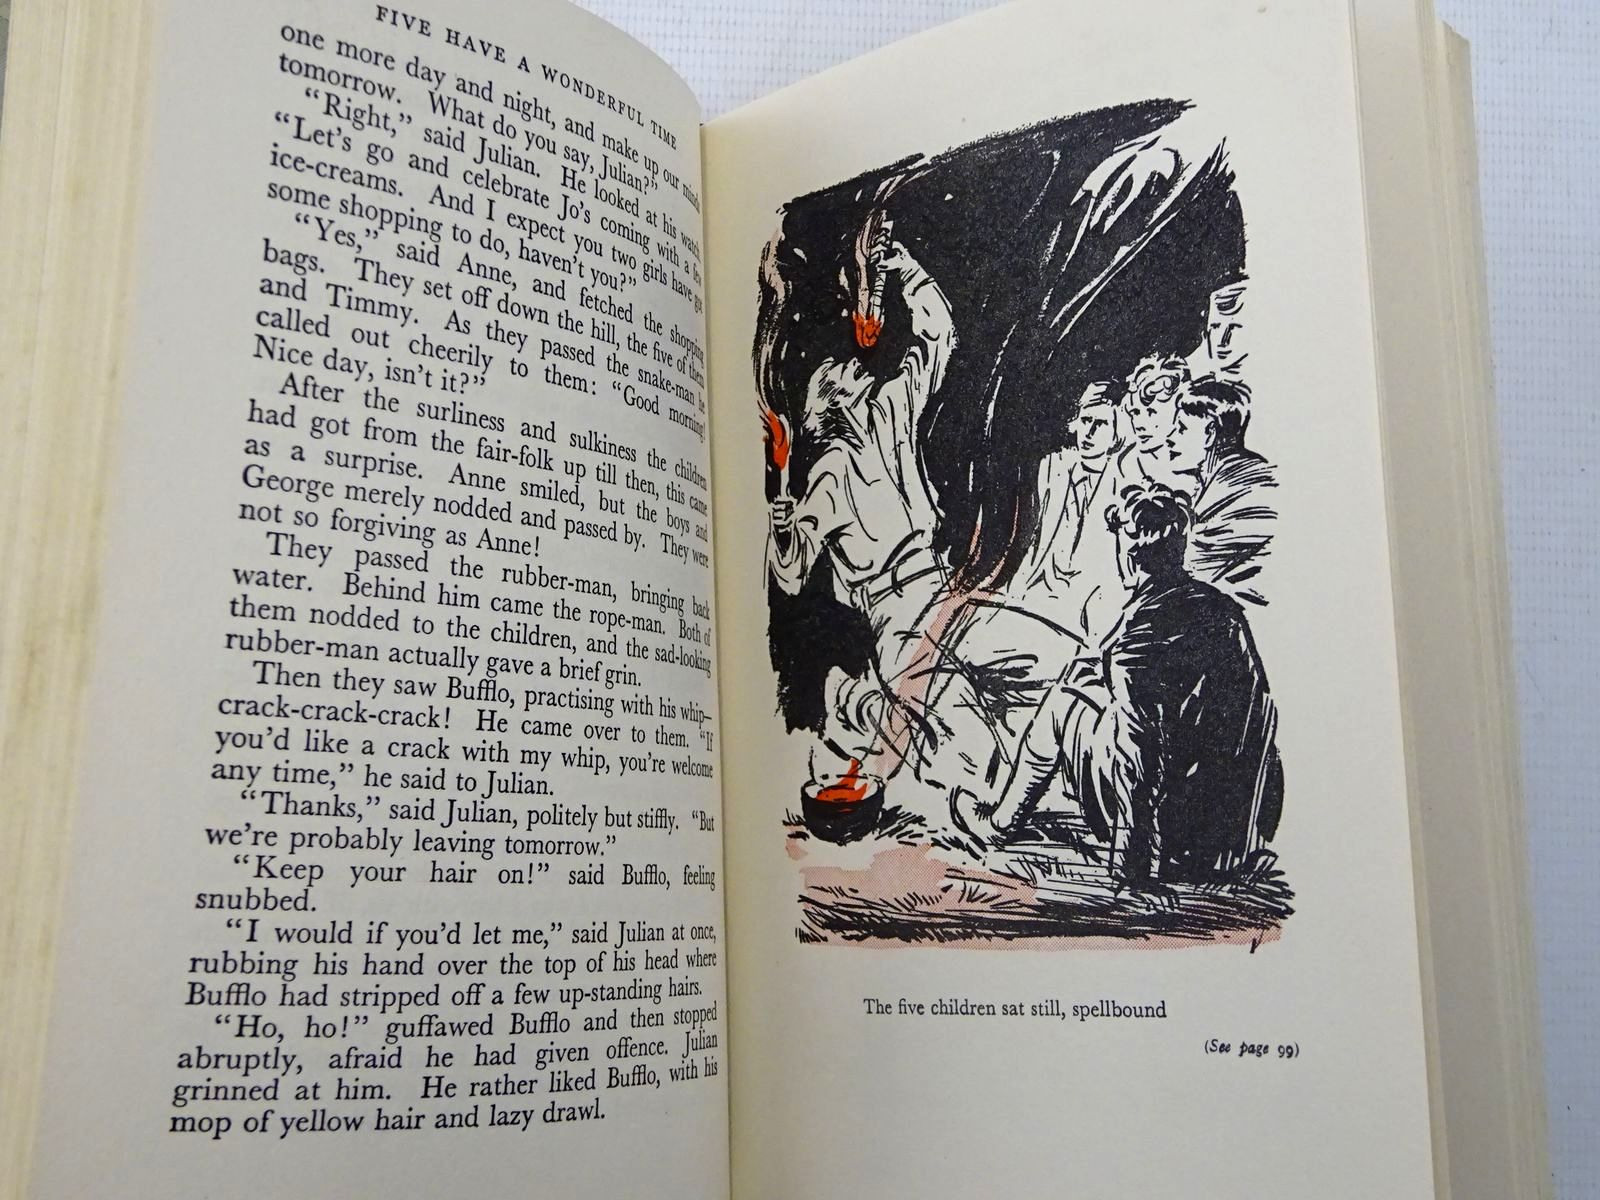 Photo of FIVE HAVE A WONDERFUL TIME written by Blyton, Enid illustrated by Soper, Eileen published by Hodder & Stoughton (STOCK CODE: 2128066)  for sale by Stella & Rose's Books